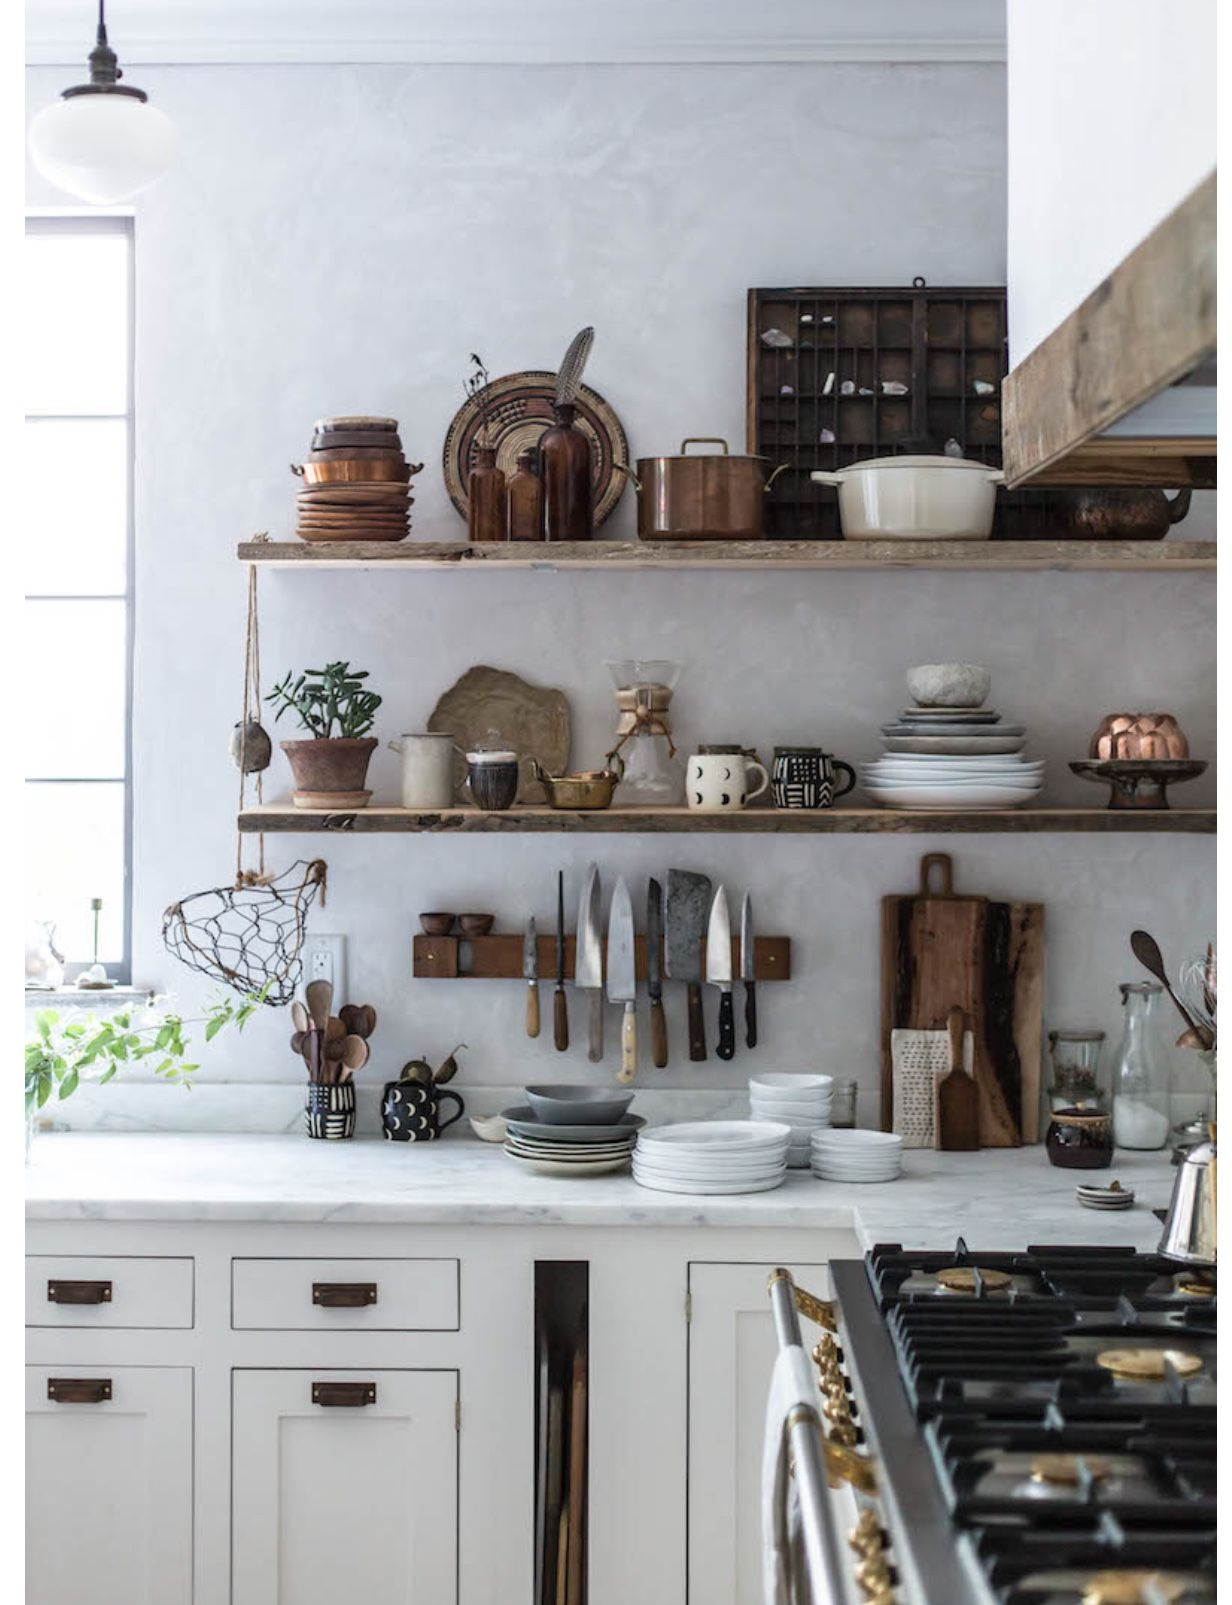 Pin by Jean Bannan on Cute Cucinas Kitchen trends